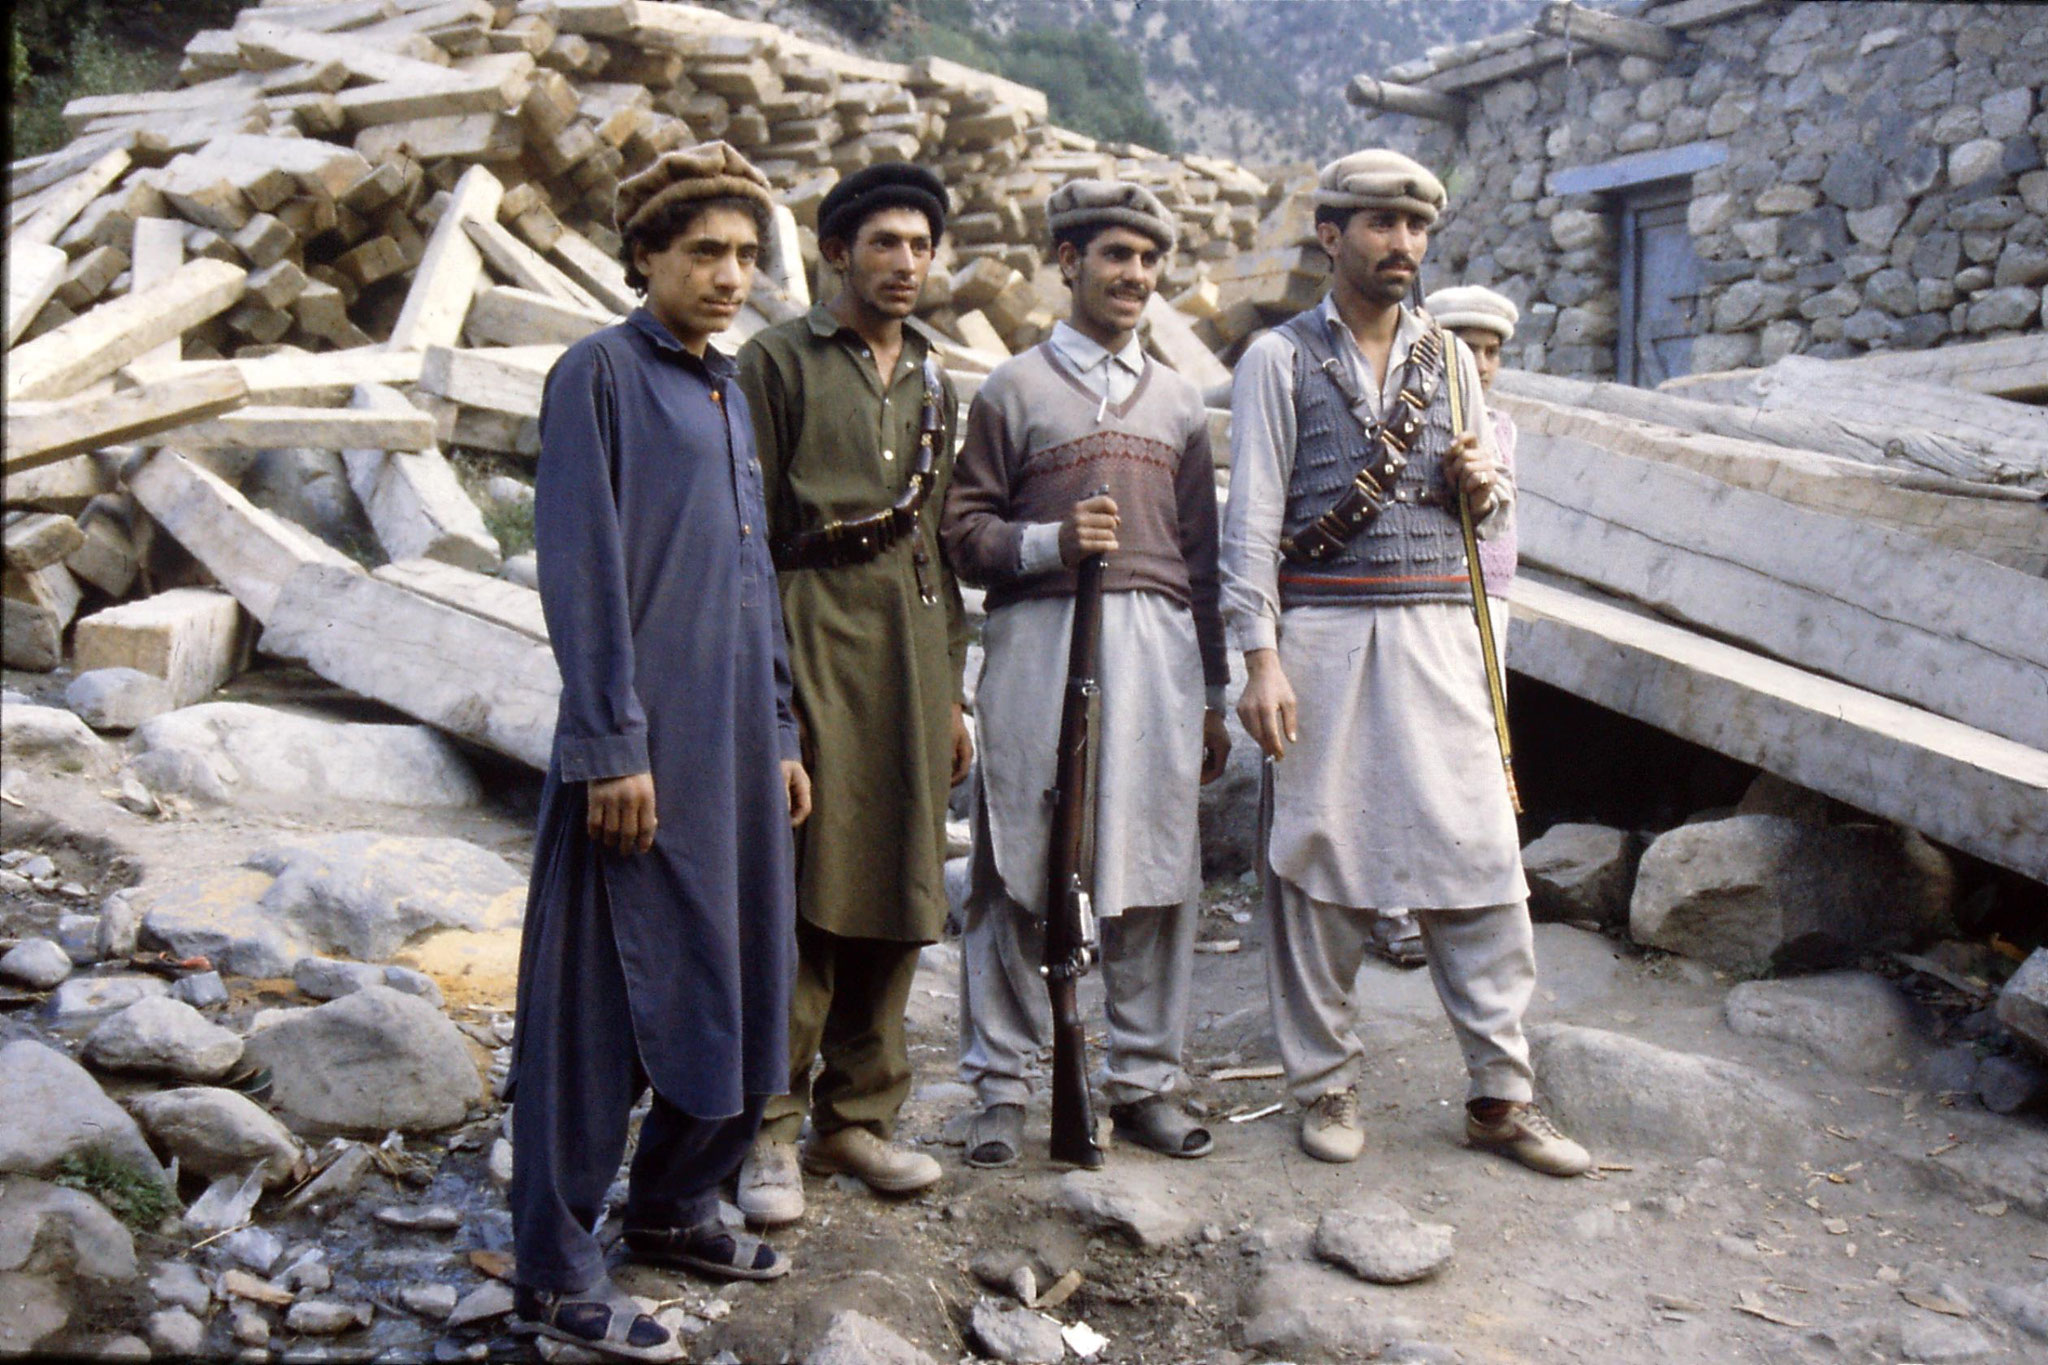 6/10/1989: 36: men at Babysar village